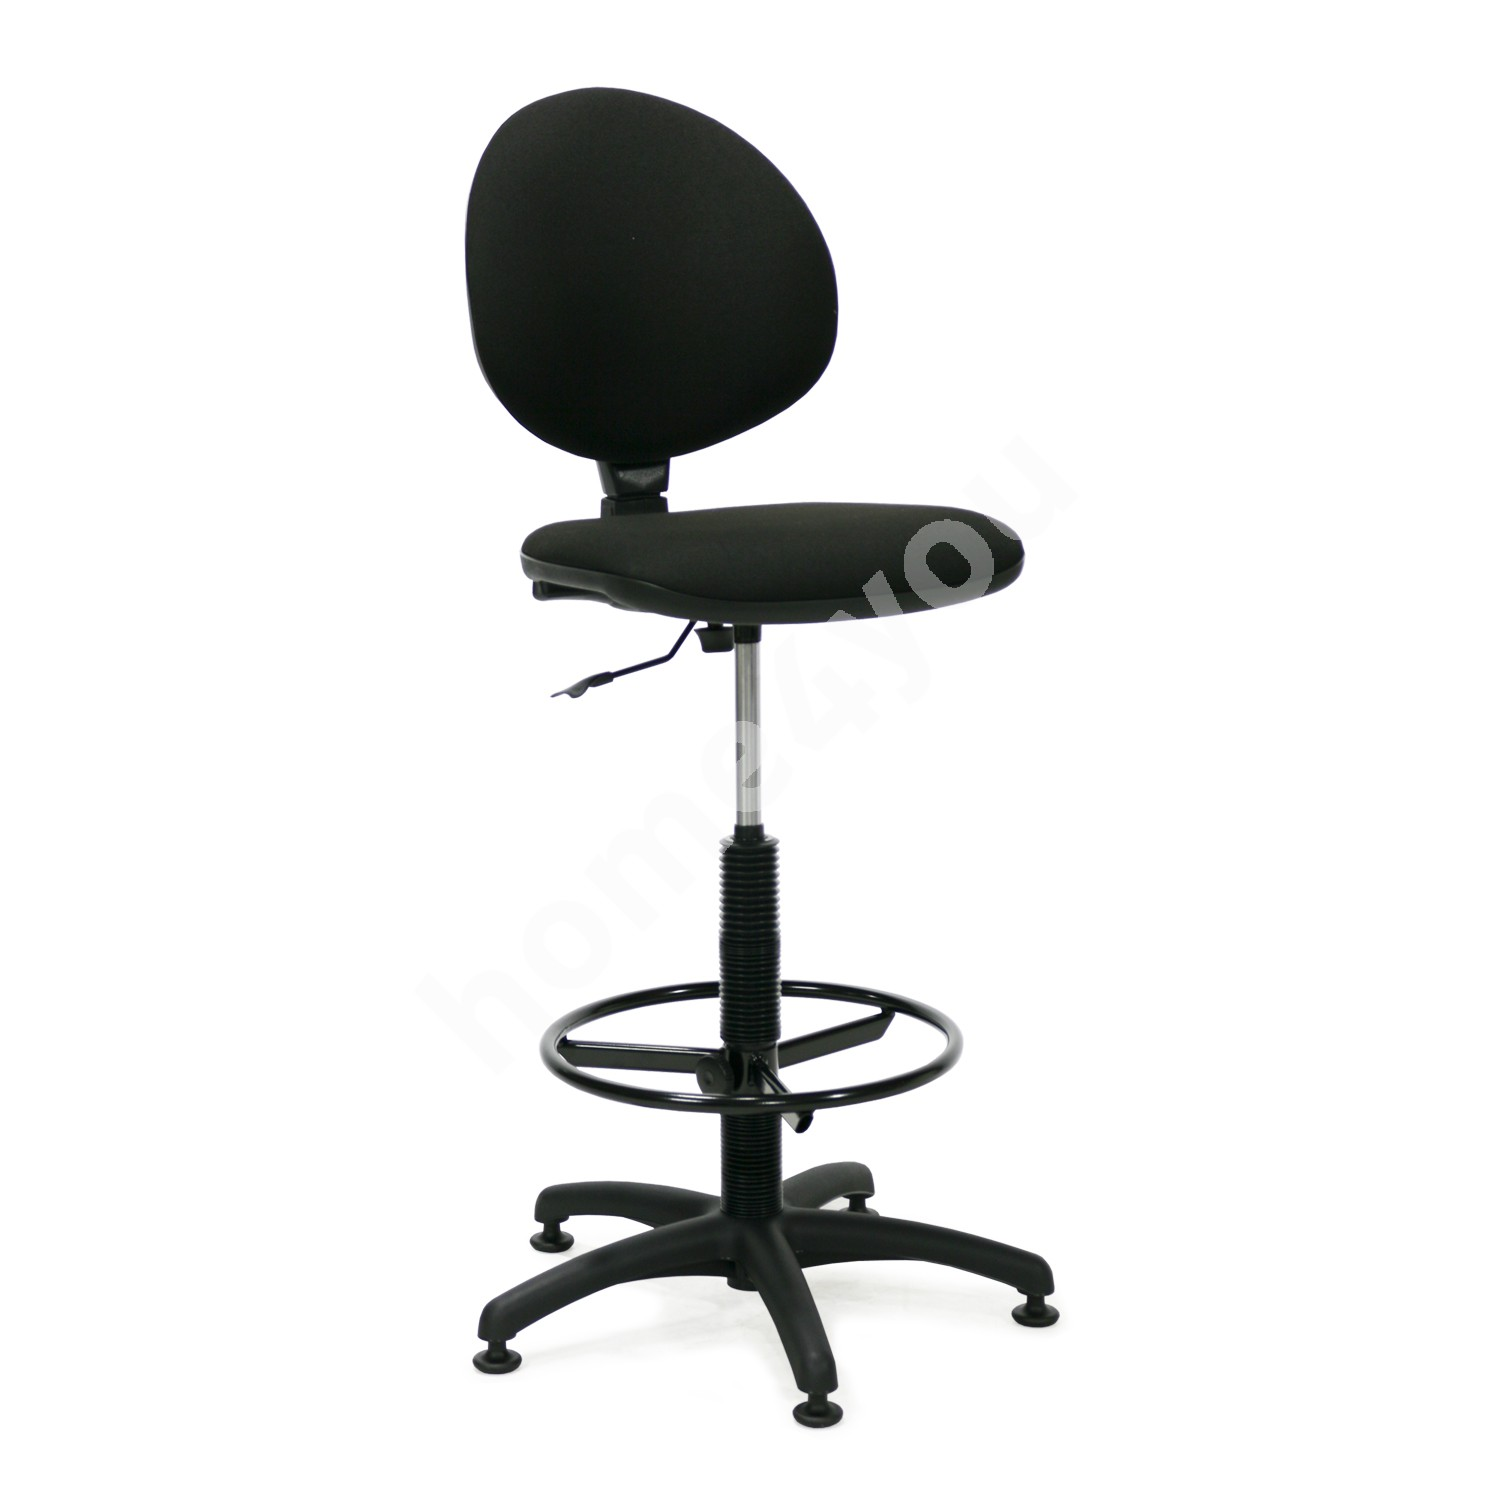 Chair high SMART 46x42,5-46,5xH109-132,5cm, seat and back rest: fabric, color: black